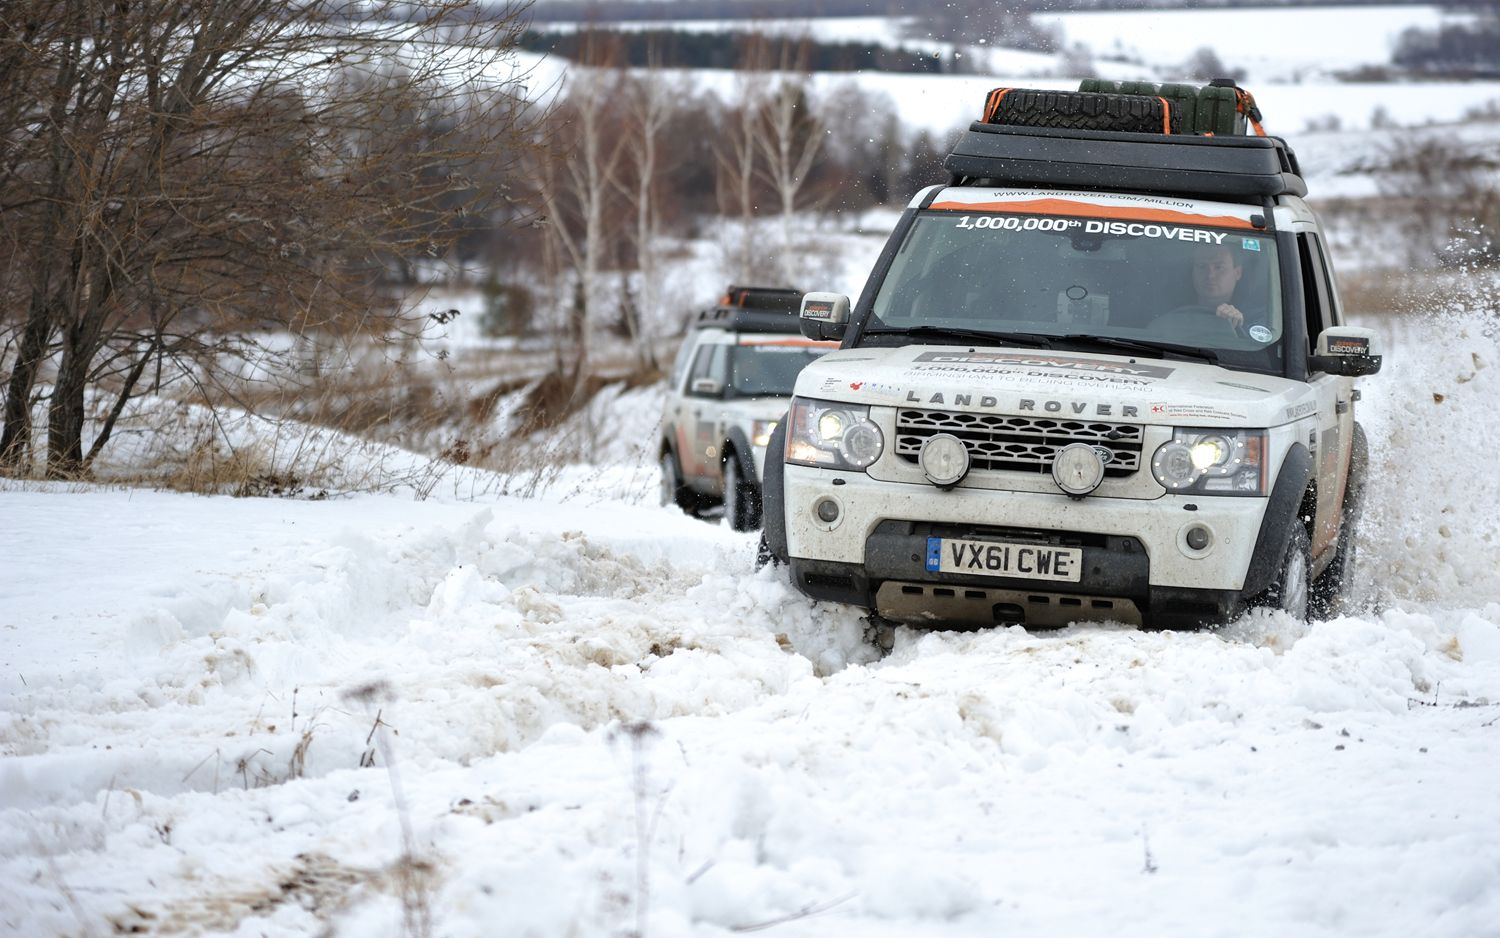 Land Rover LR4 Discovery Front End1